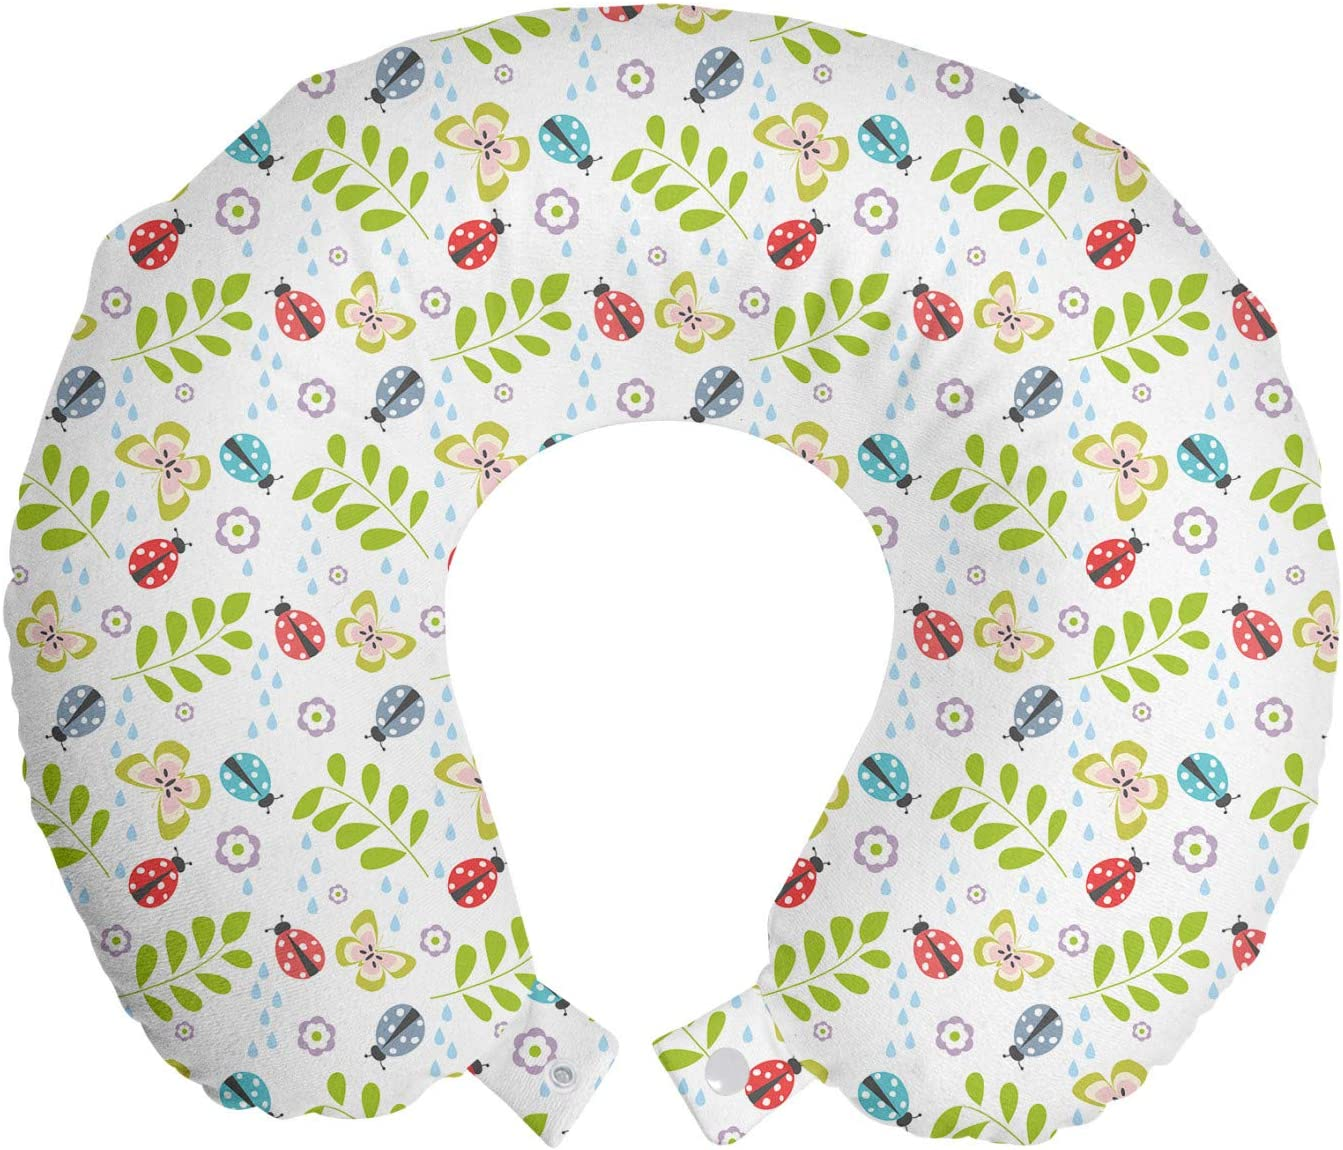 Ambesonne Ladybug Travel Pillow Neck Garden Spring new work one after another Them Rest Botanical Quantity limited